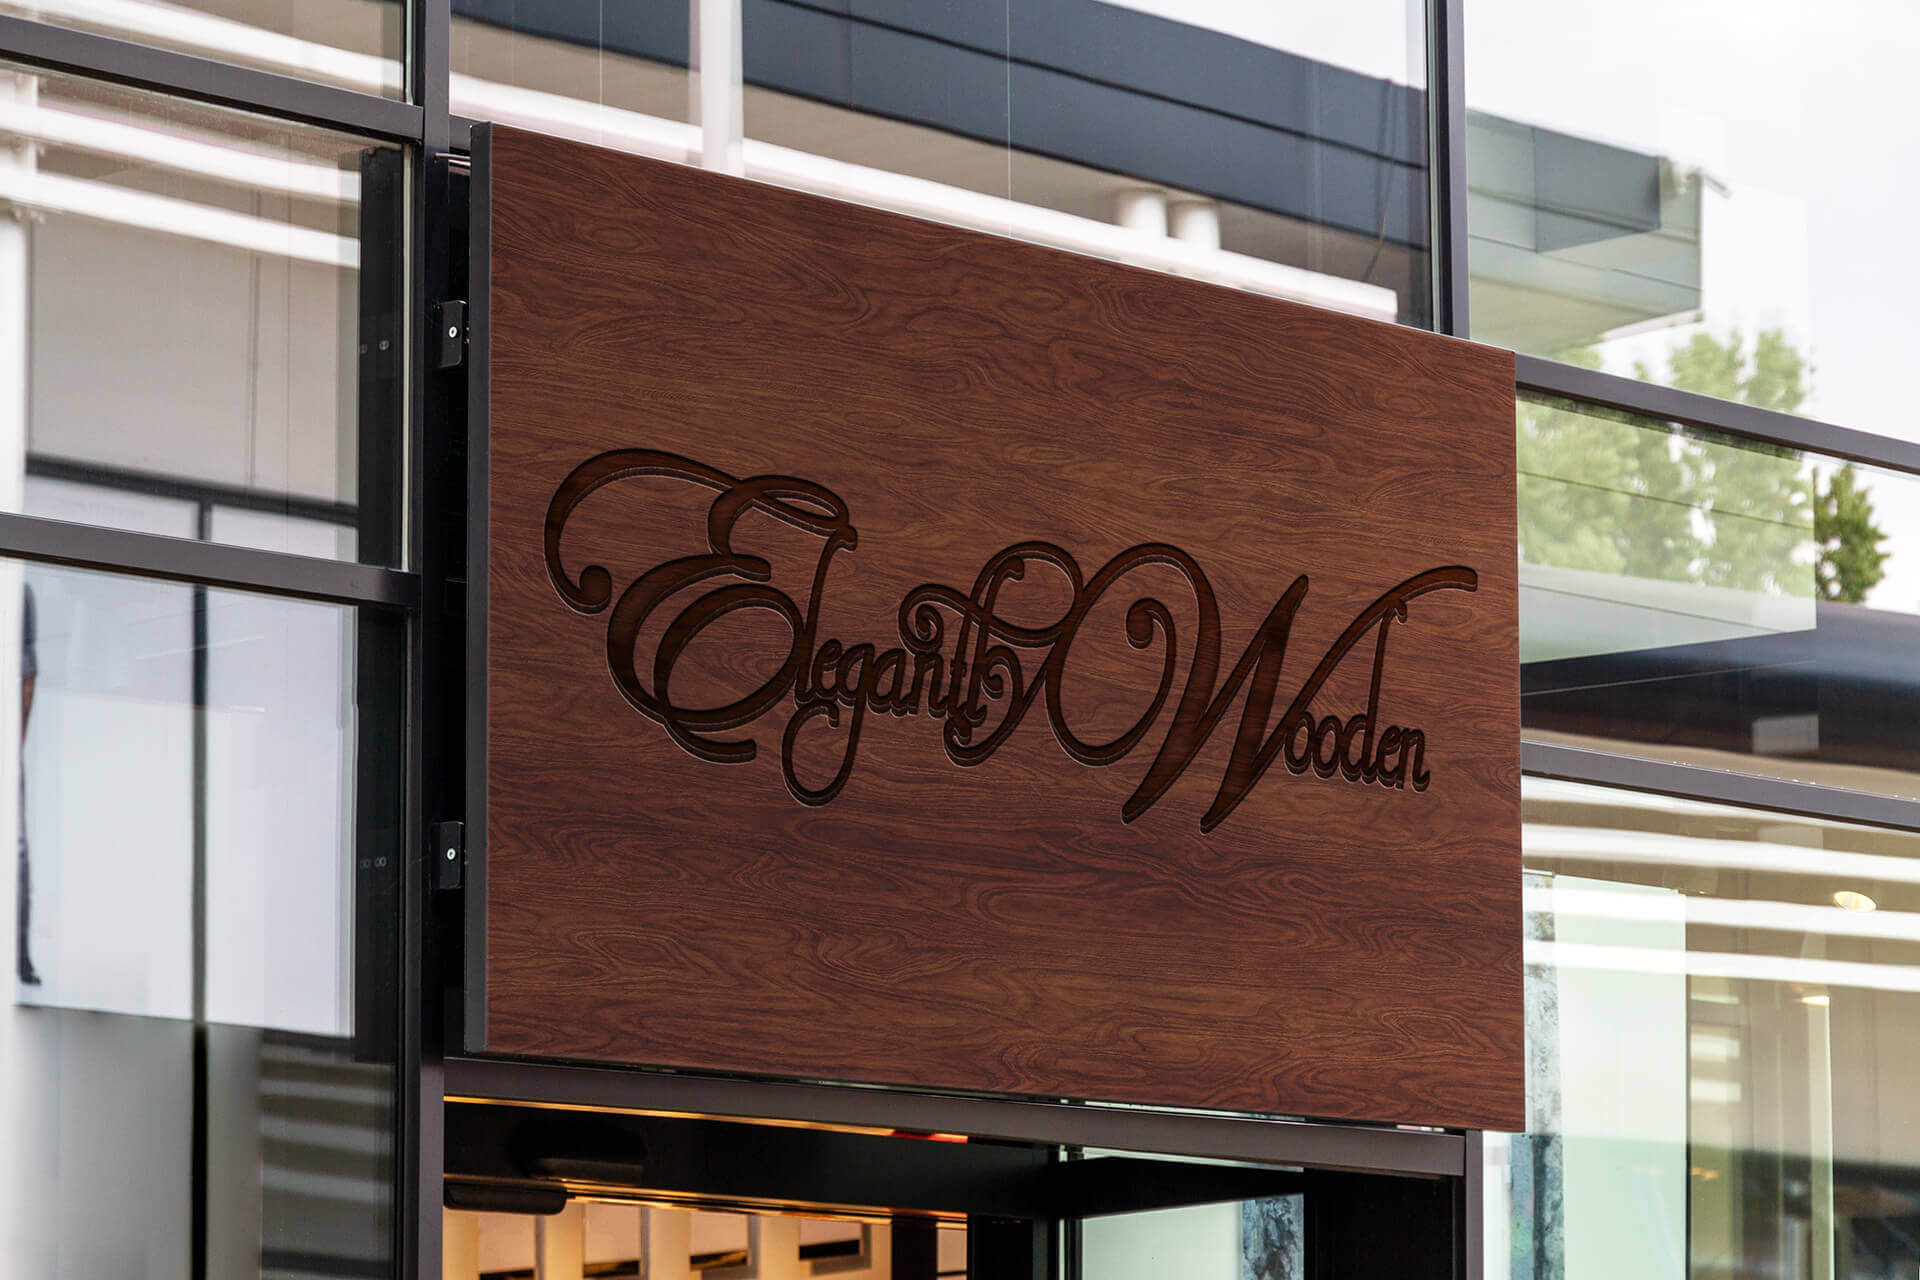 We make custom wood signs for businesses.